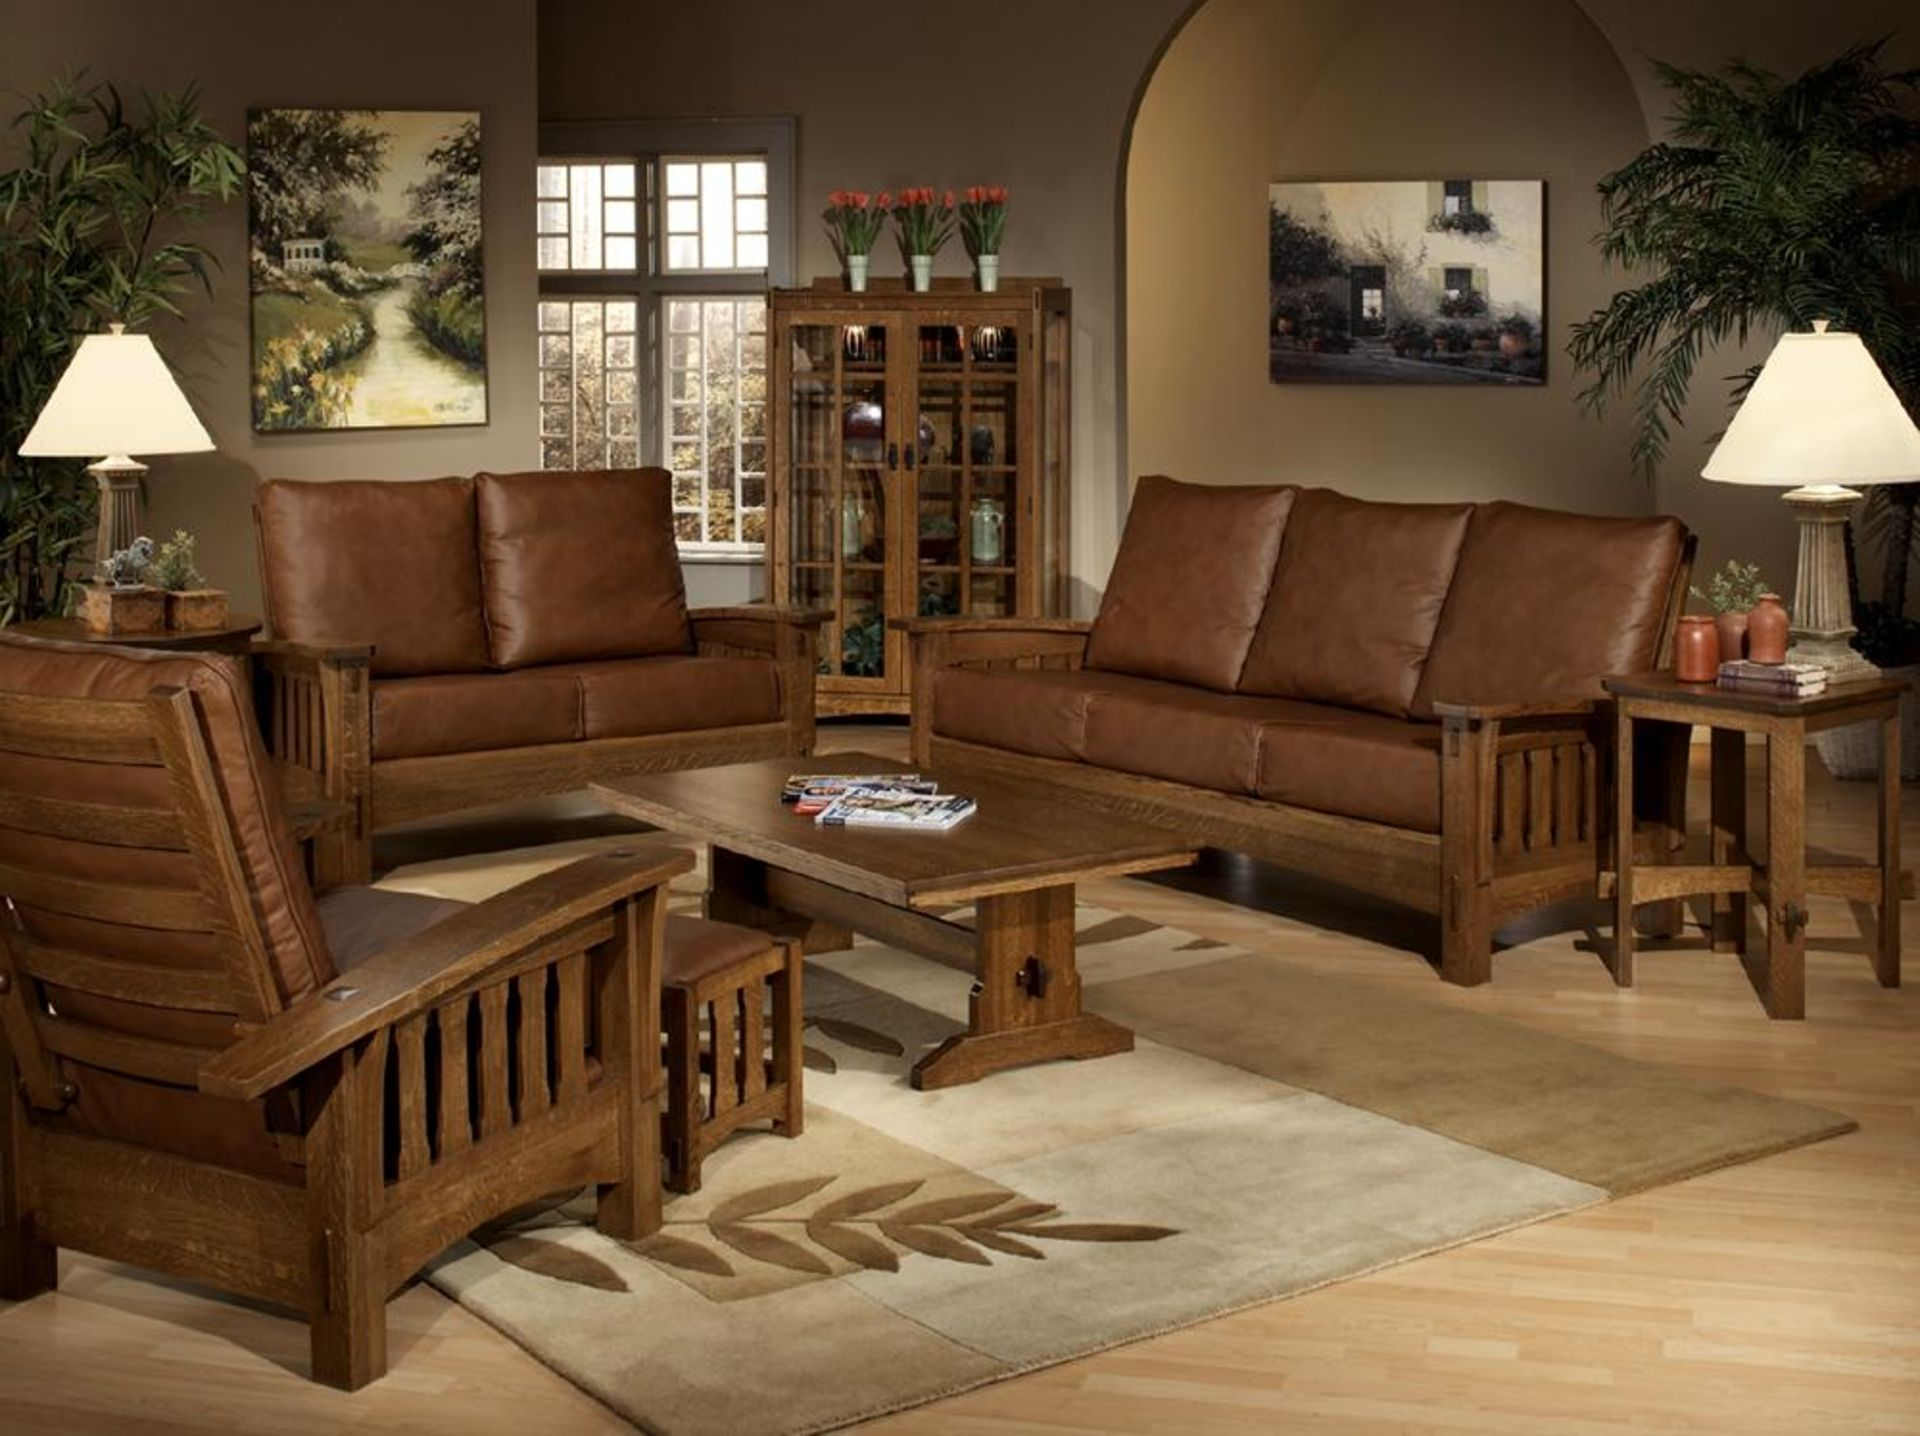 Furniture dark brown leather sofa set with brown wooden arms and